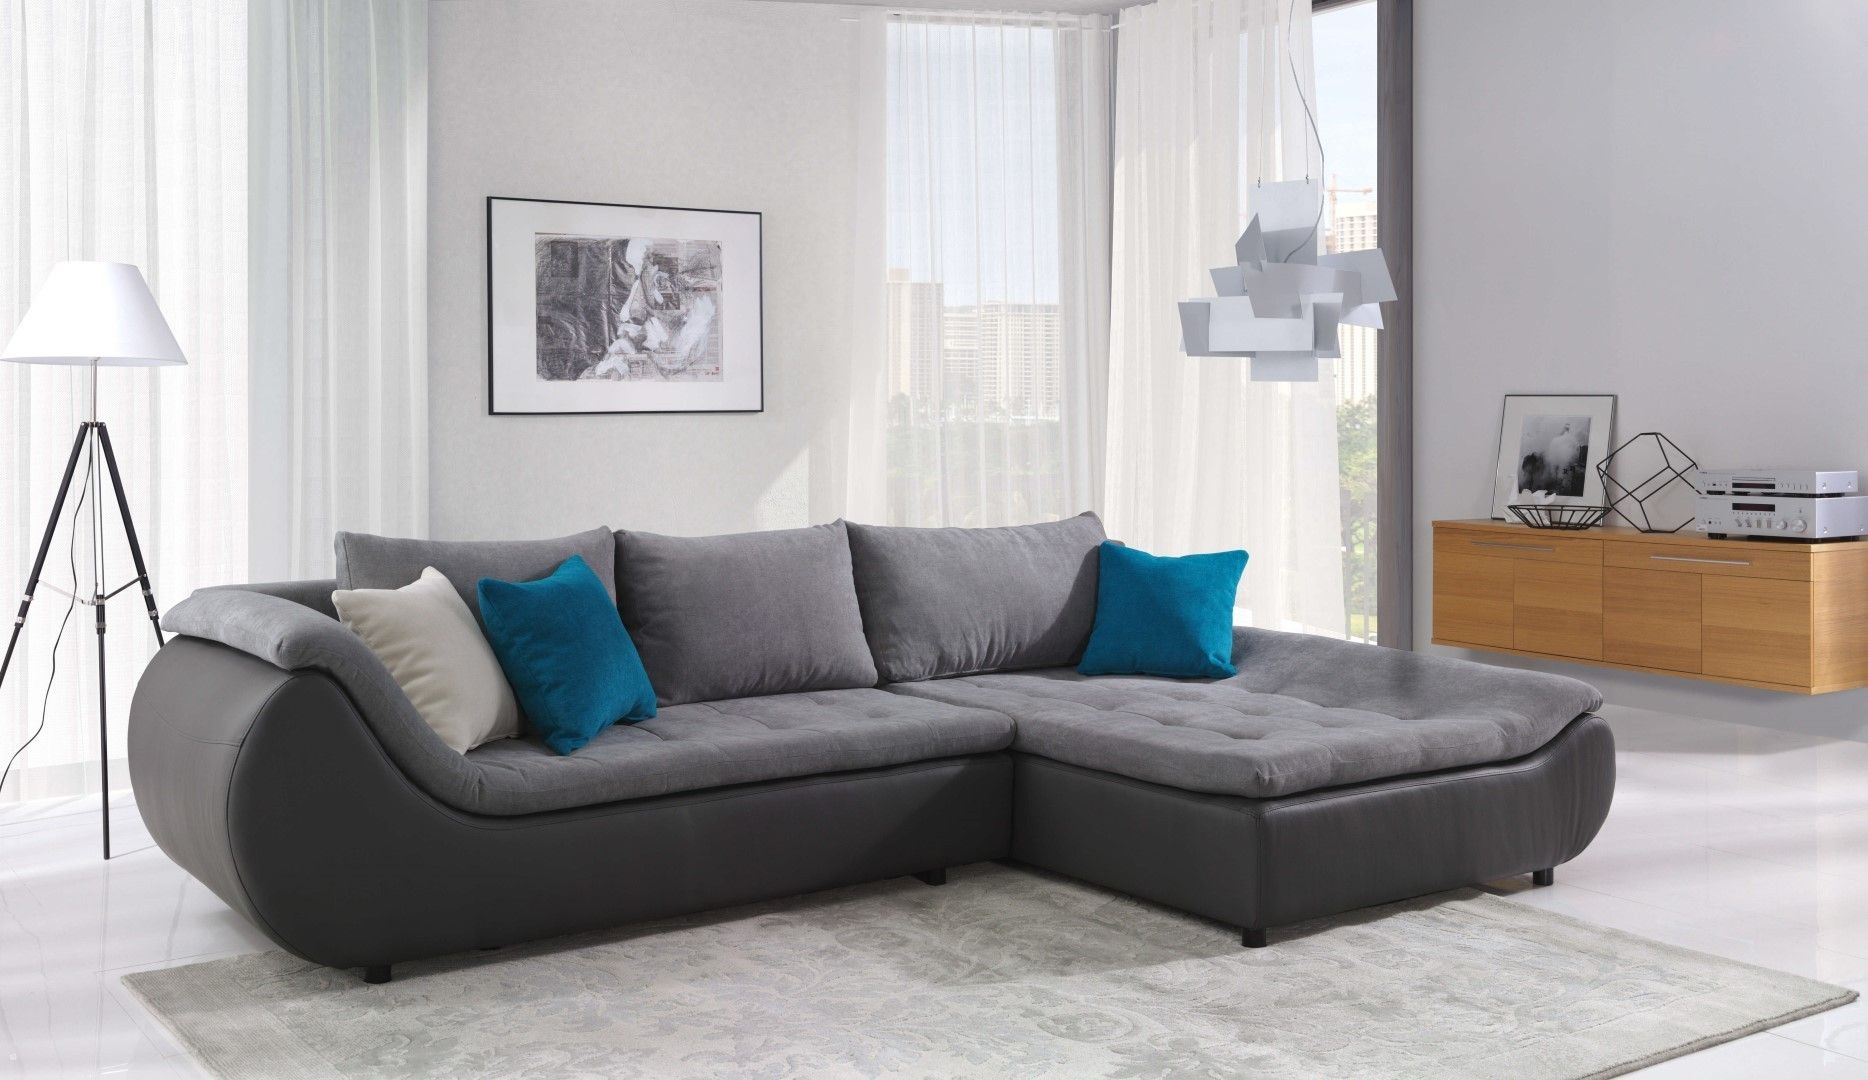 2019 Unique Sectional Sofas With Creativity For Tasty Distinctive